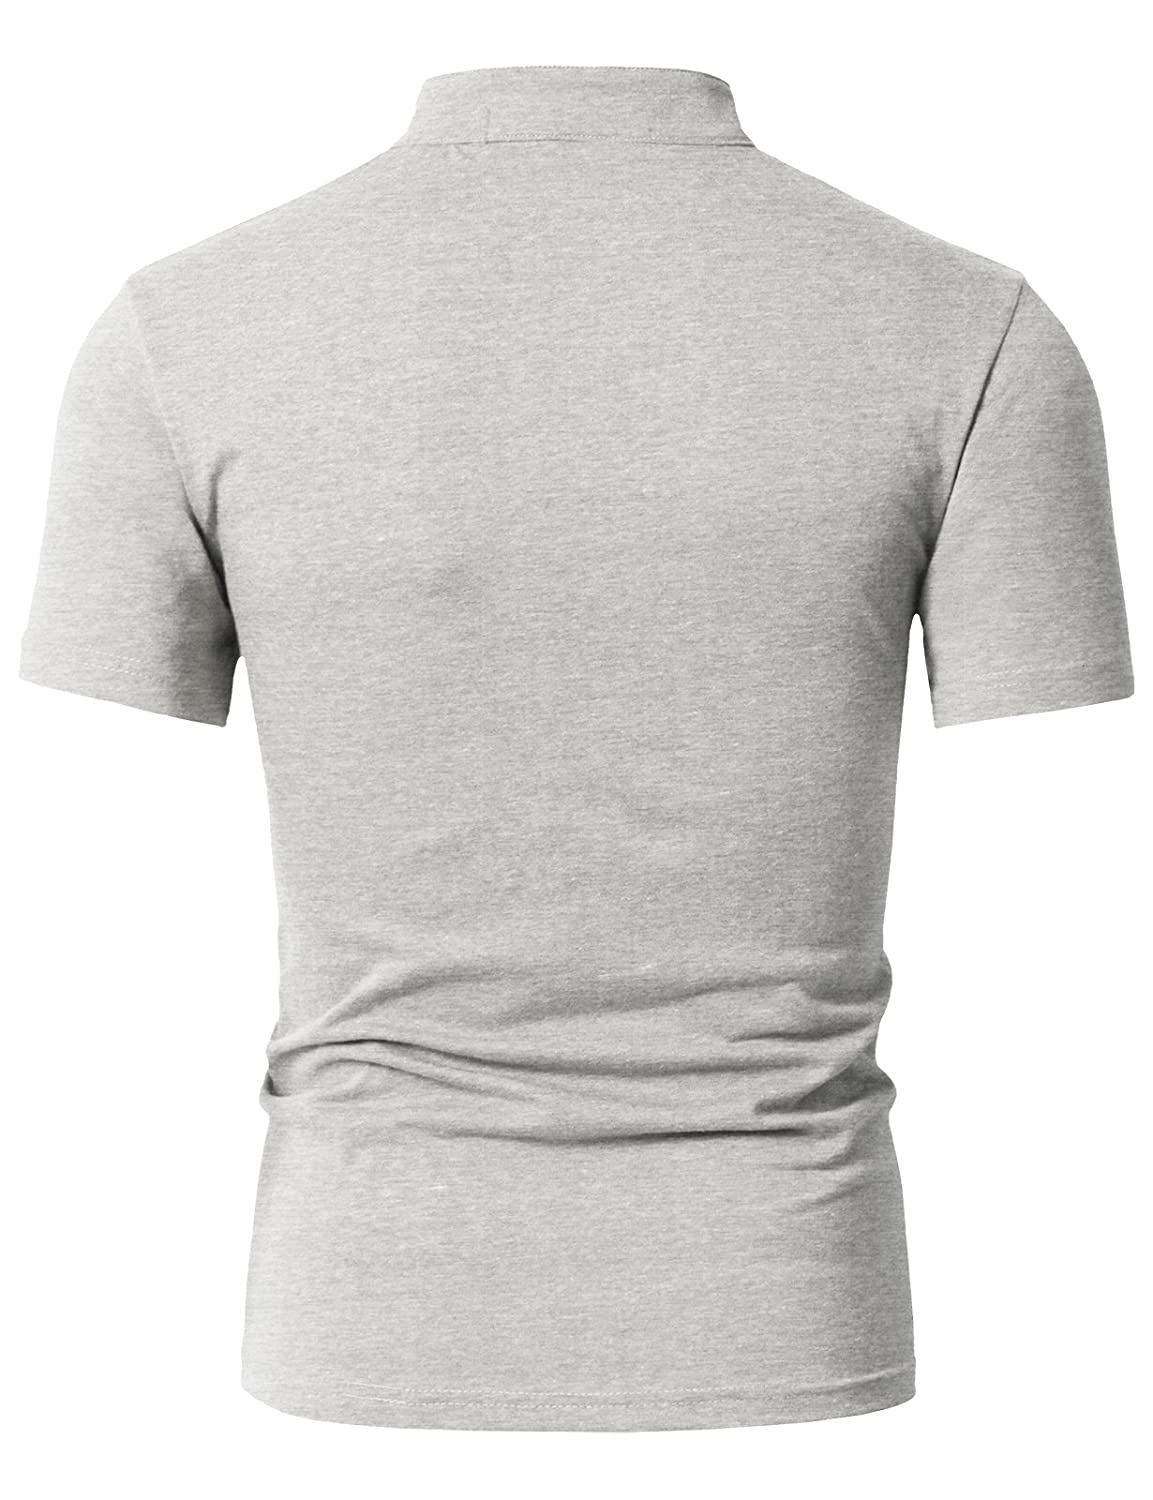 bcd6aa0bcad DANDYCLO Men s Henley Style Comfortable Fabric Short Sleeve Basic Design Top  Ivory X-Small